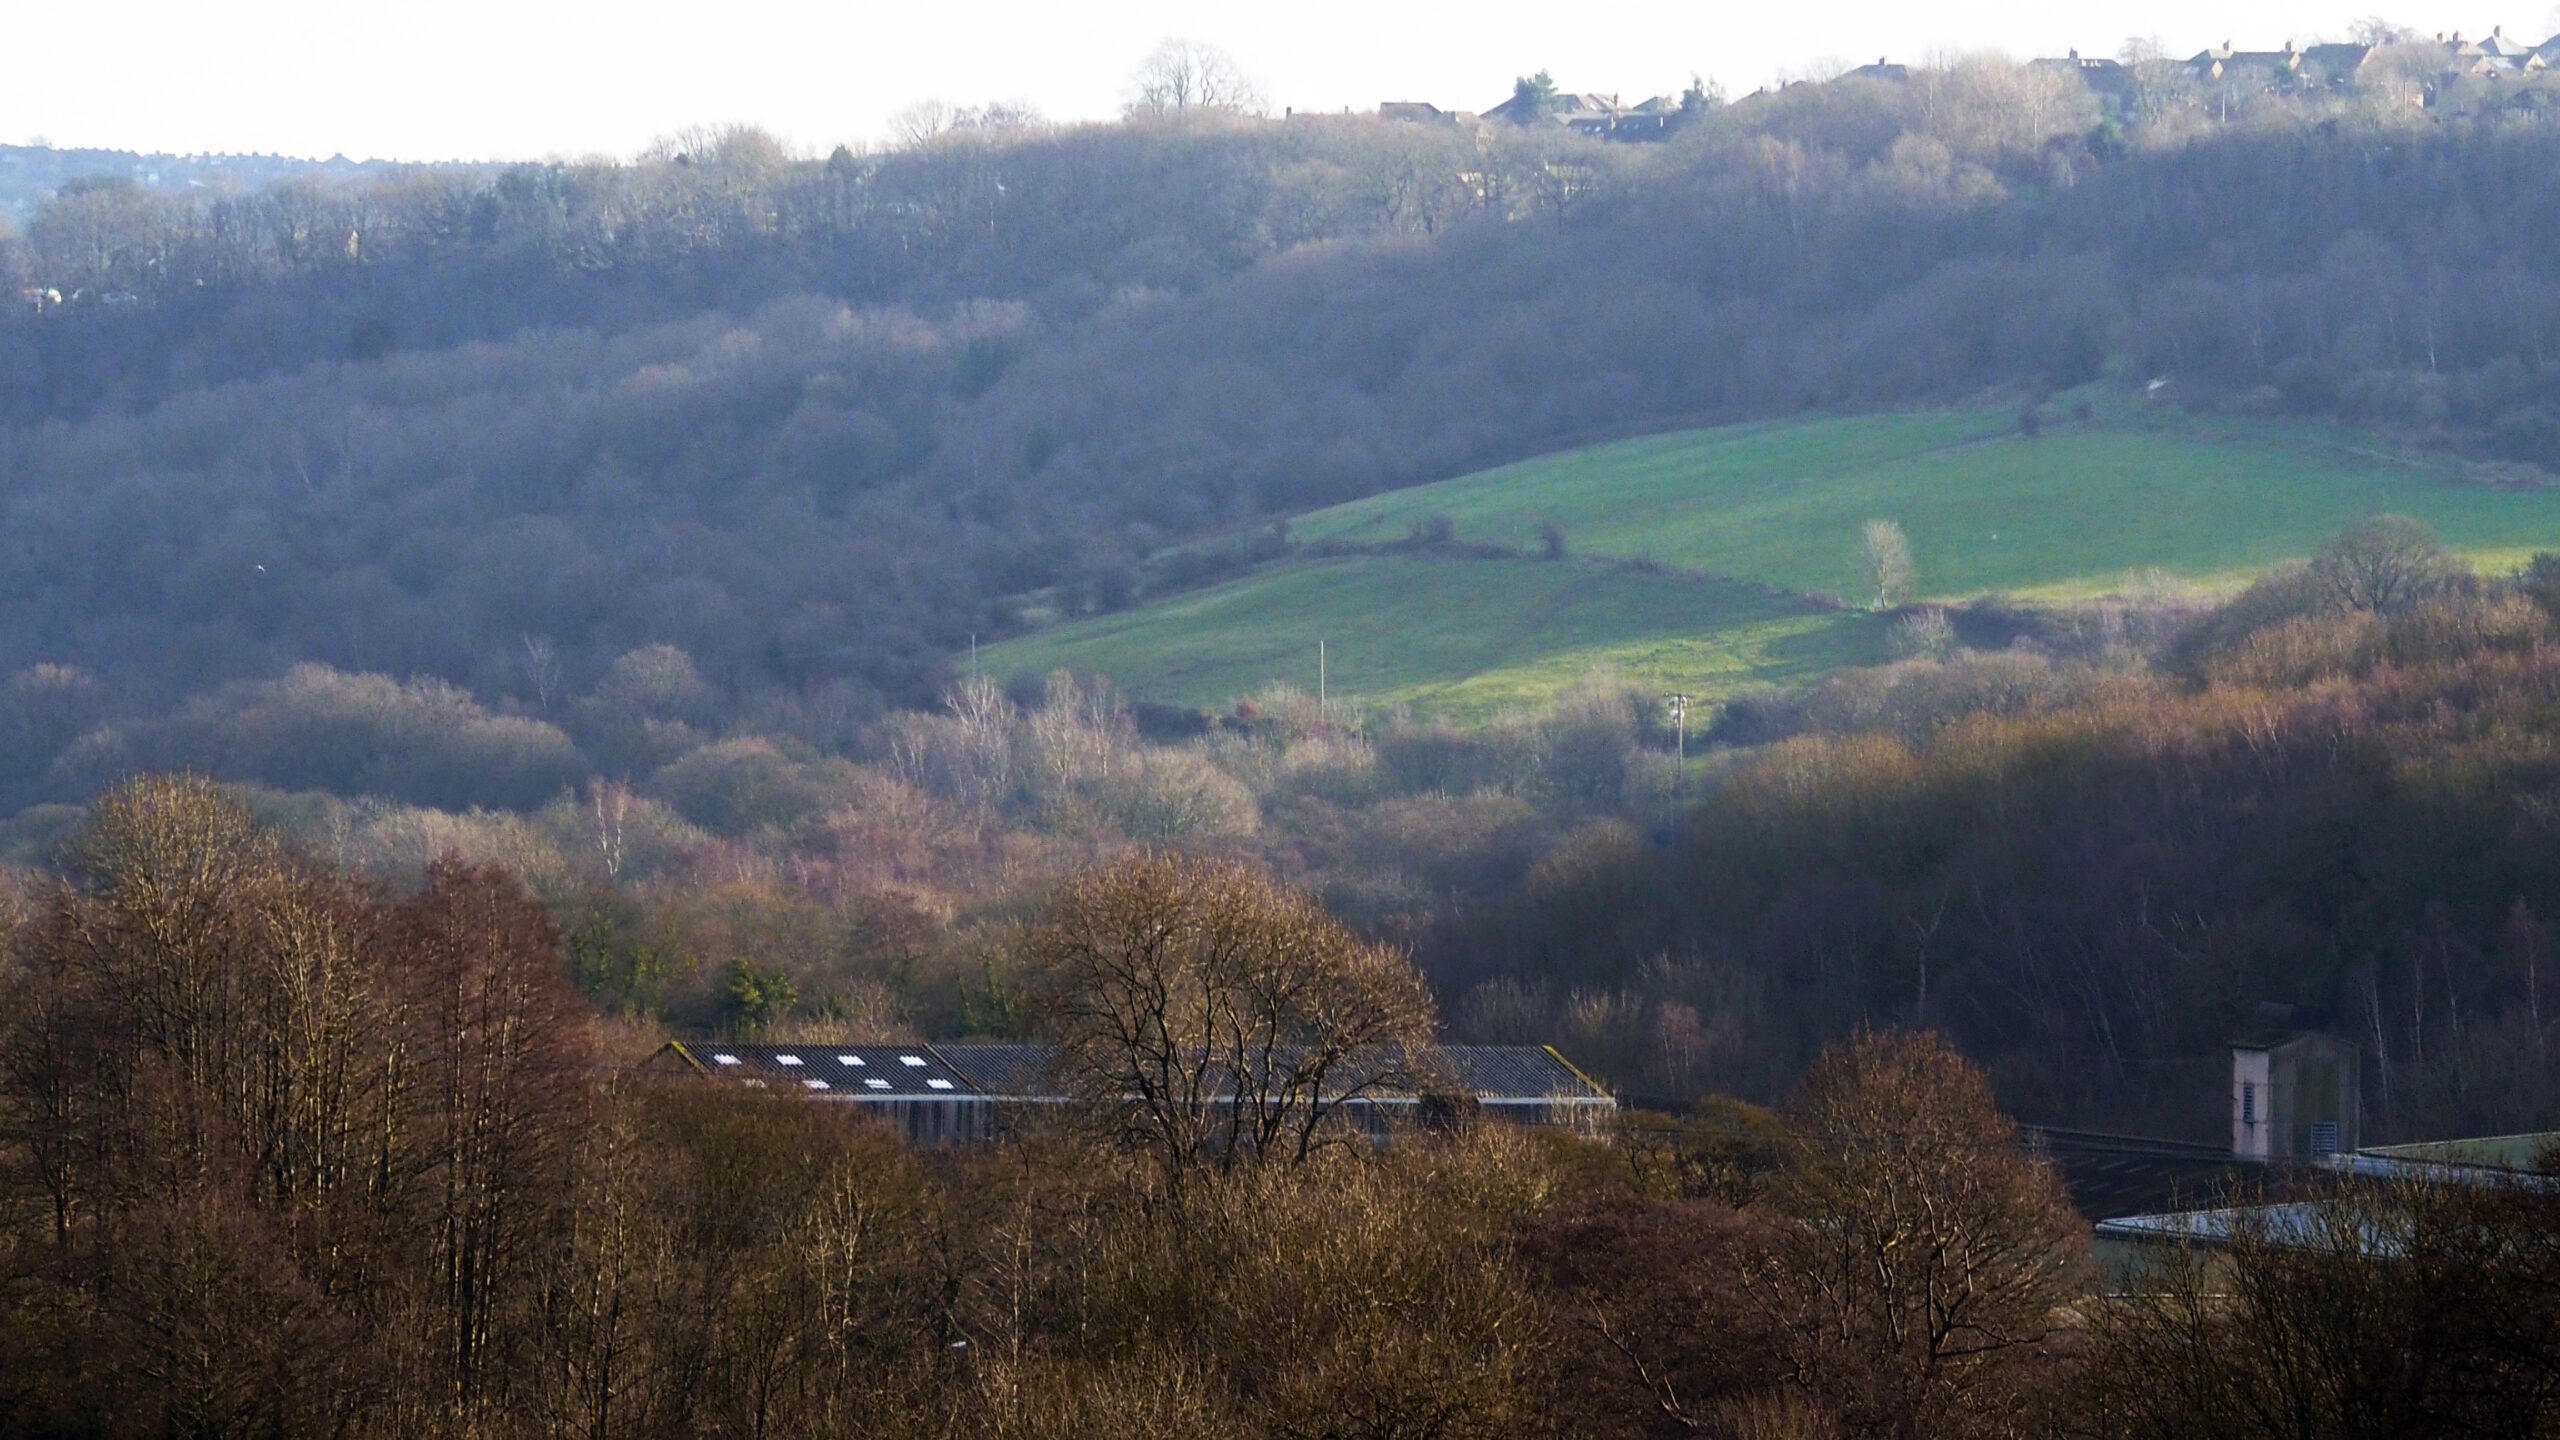 The old Hepworth factory site in the Loxley valley